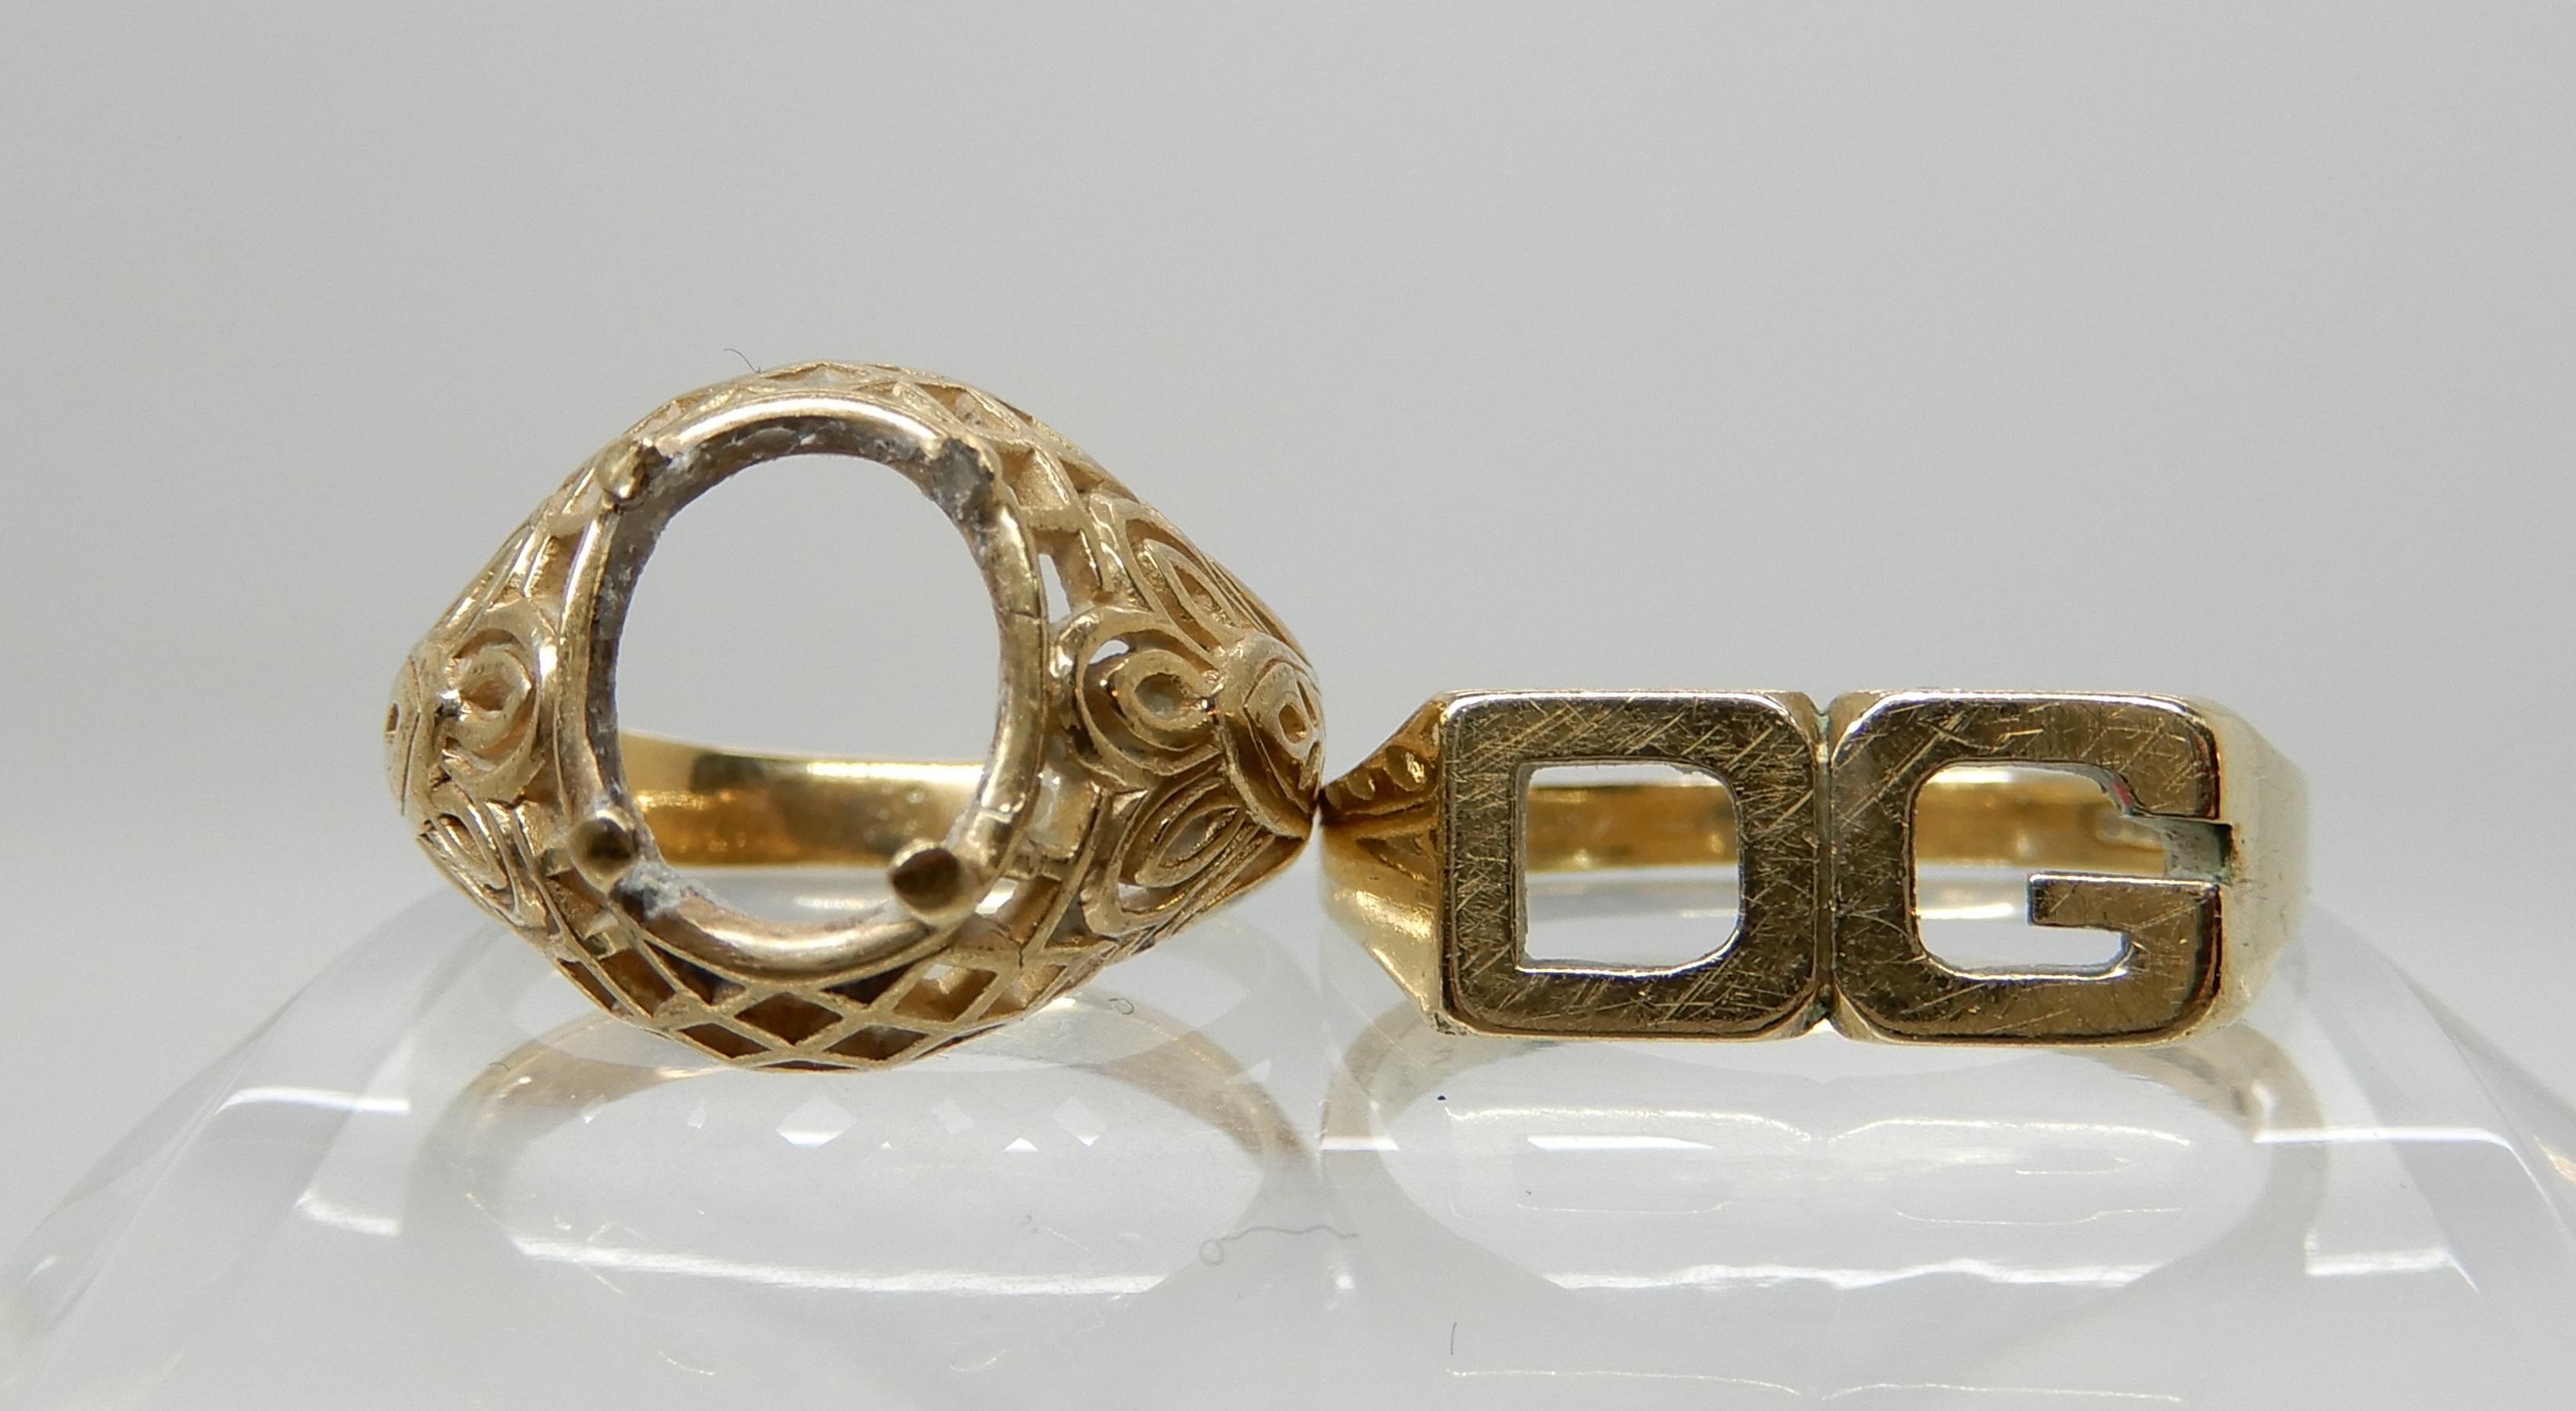 Lot 18 - A 9ct initial ring 'DG' size Q1/2 and a decorative yellow metal ring shank without stone size K1/